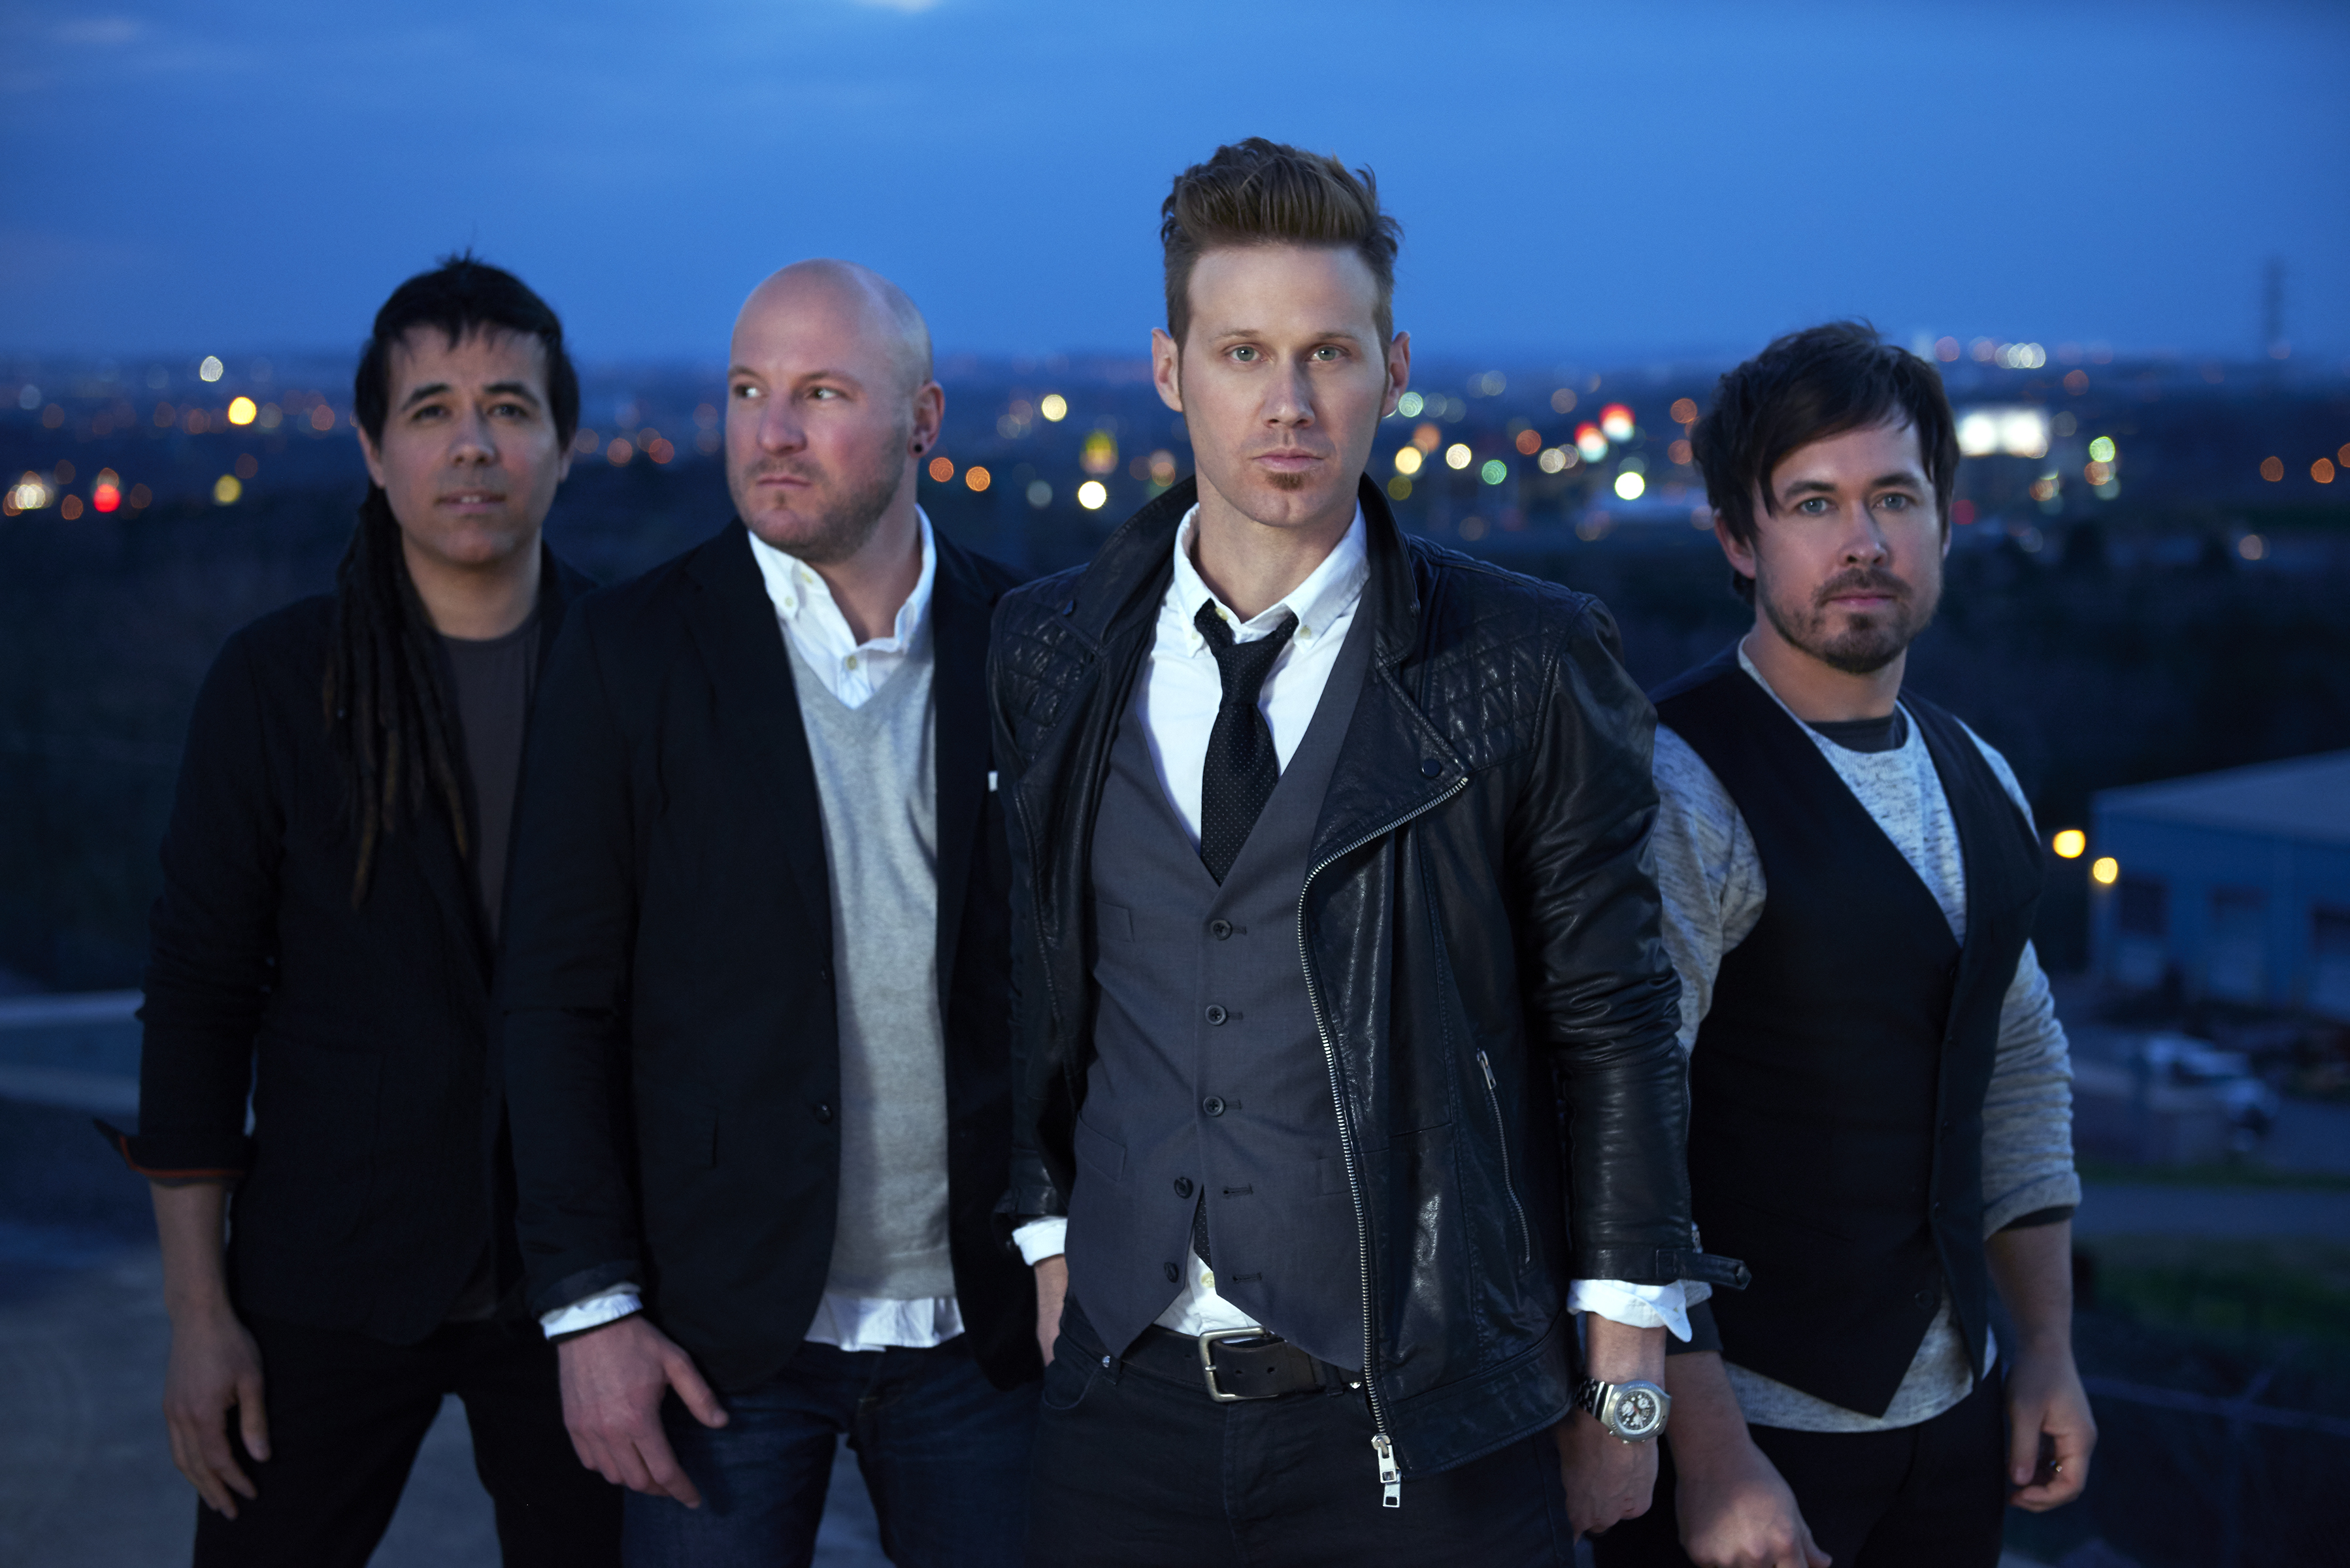 Jason Roy 2nd from right and Building 429